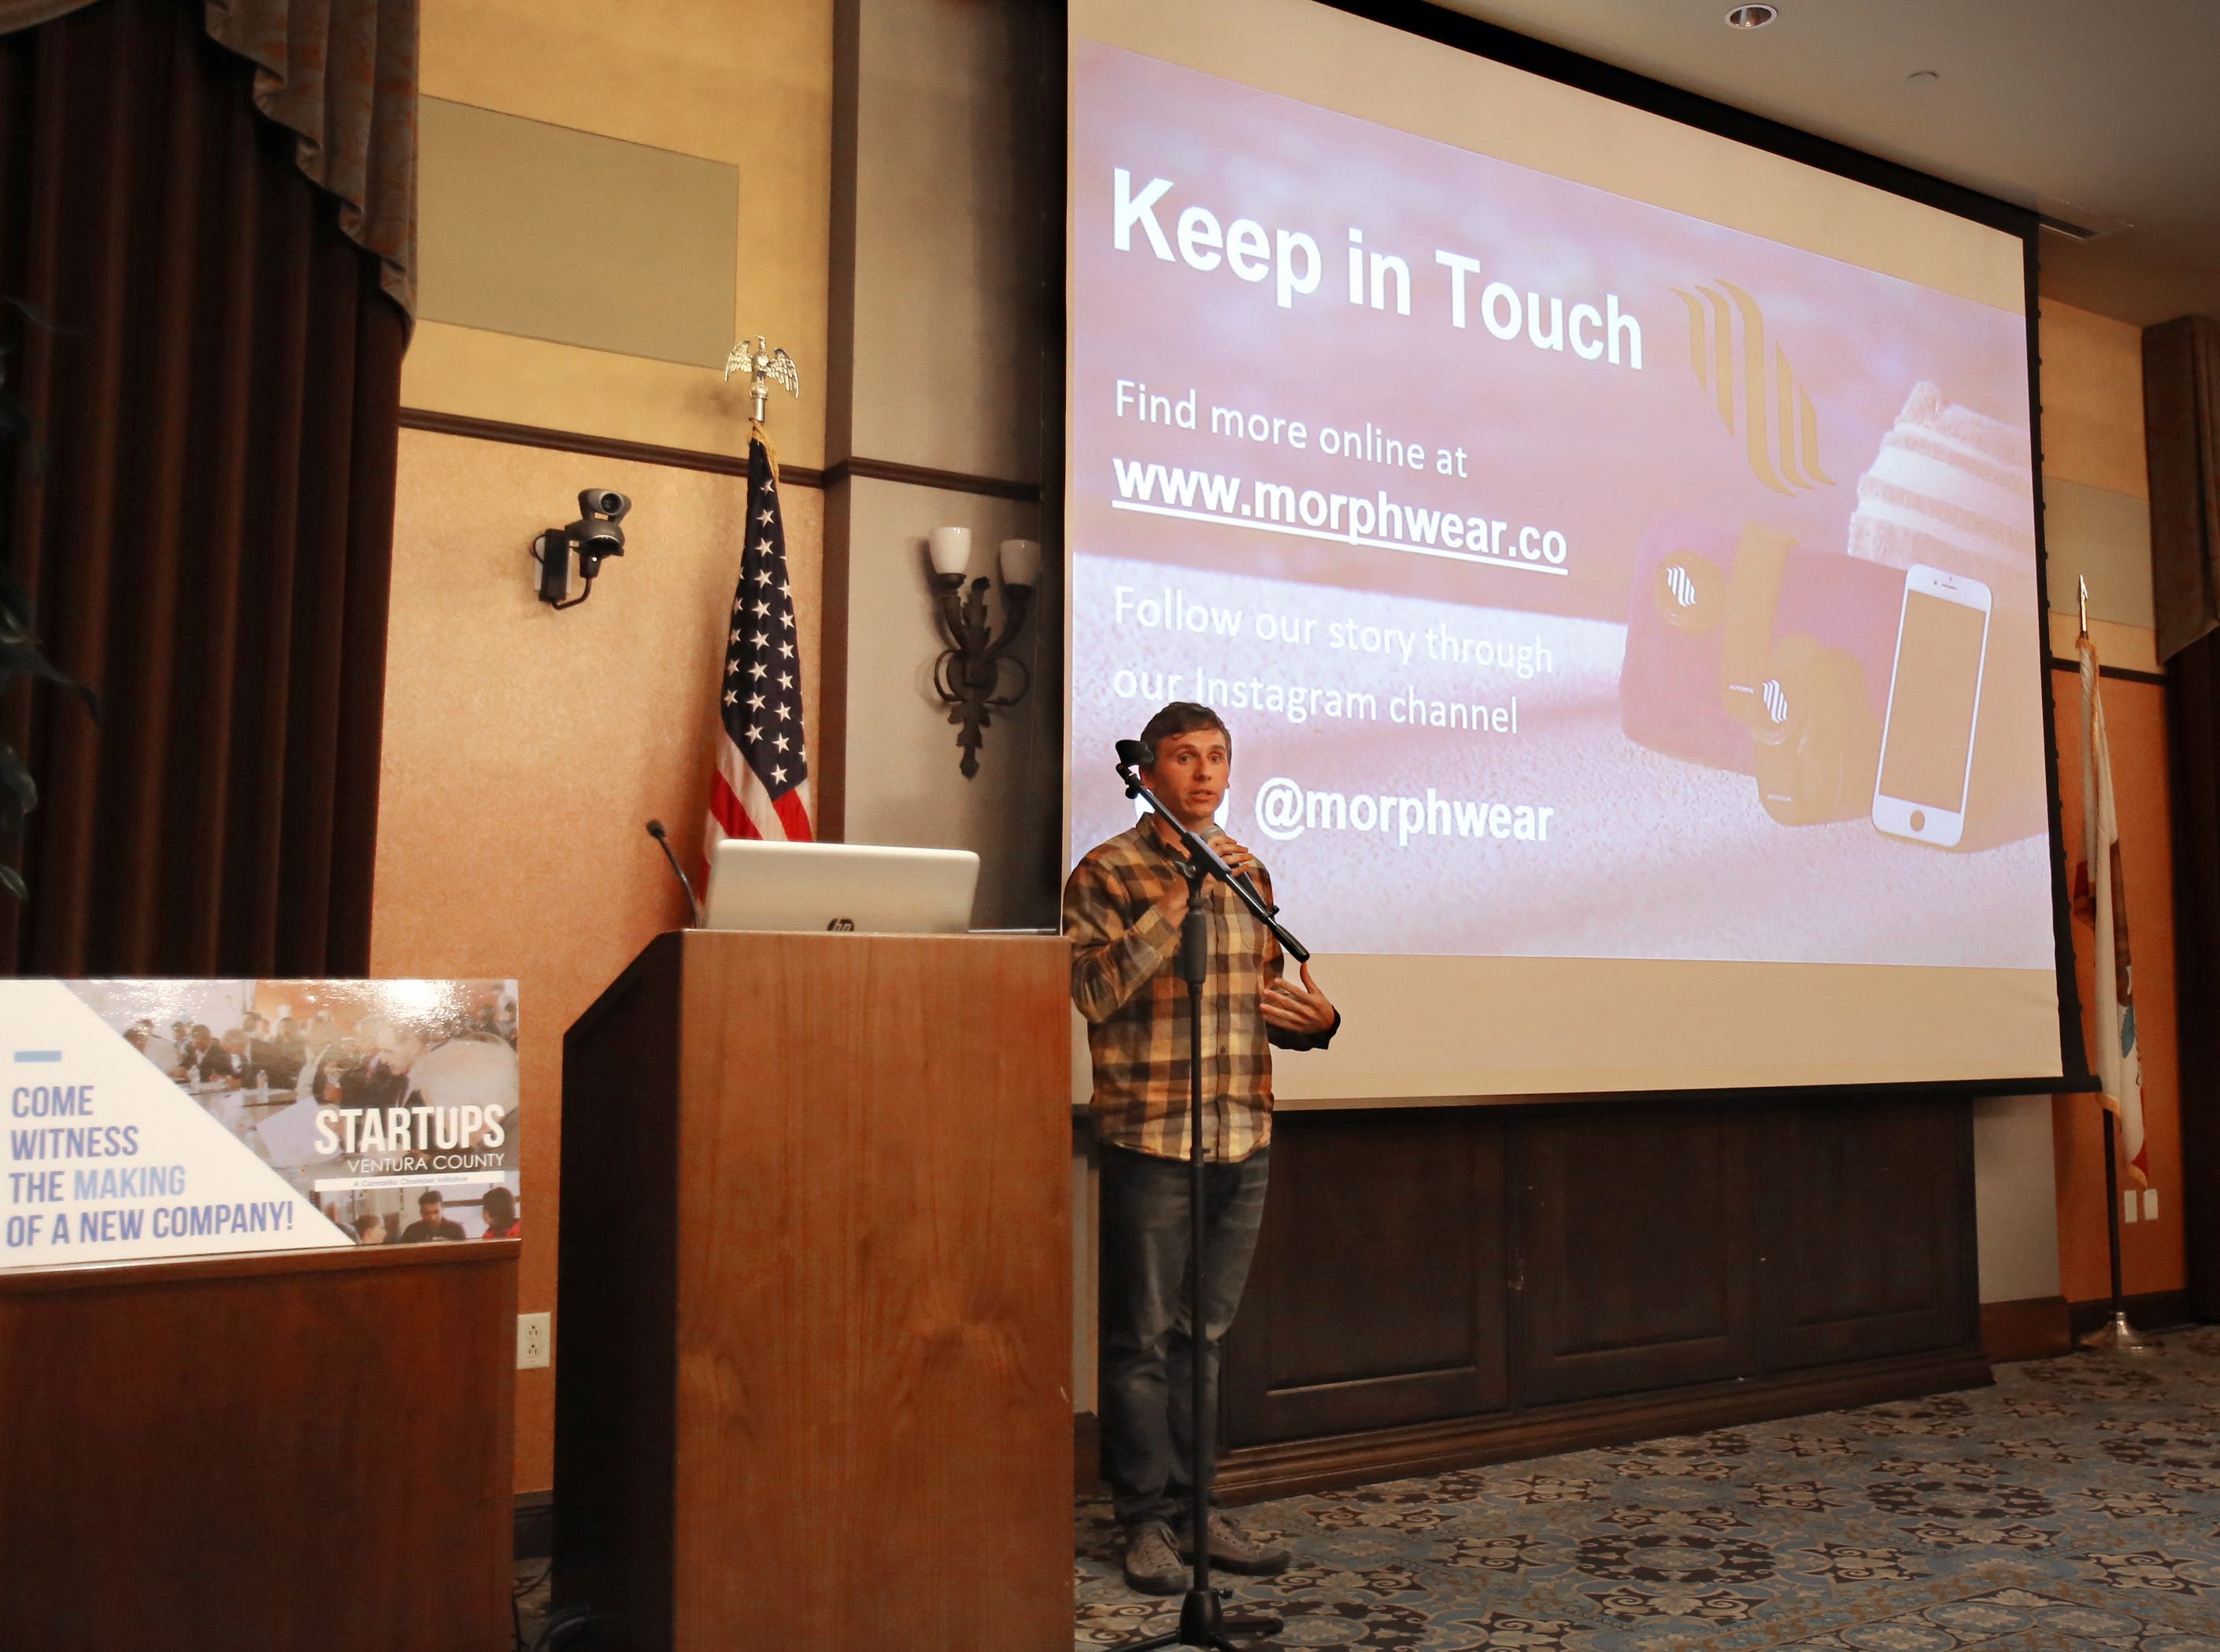 Konrad Antoniuk, from Morphwear, talks about his company during the Startups Ventura County event at the Camarillo Public Library. His company is working on a device that will enable swimmers to track their performance while working out in the pool. Entrepreneurs were competing for the top prize of $10,000 during the three-day event that started Friday.